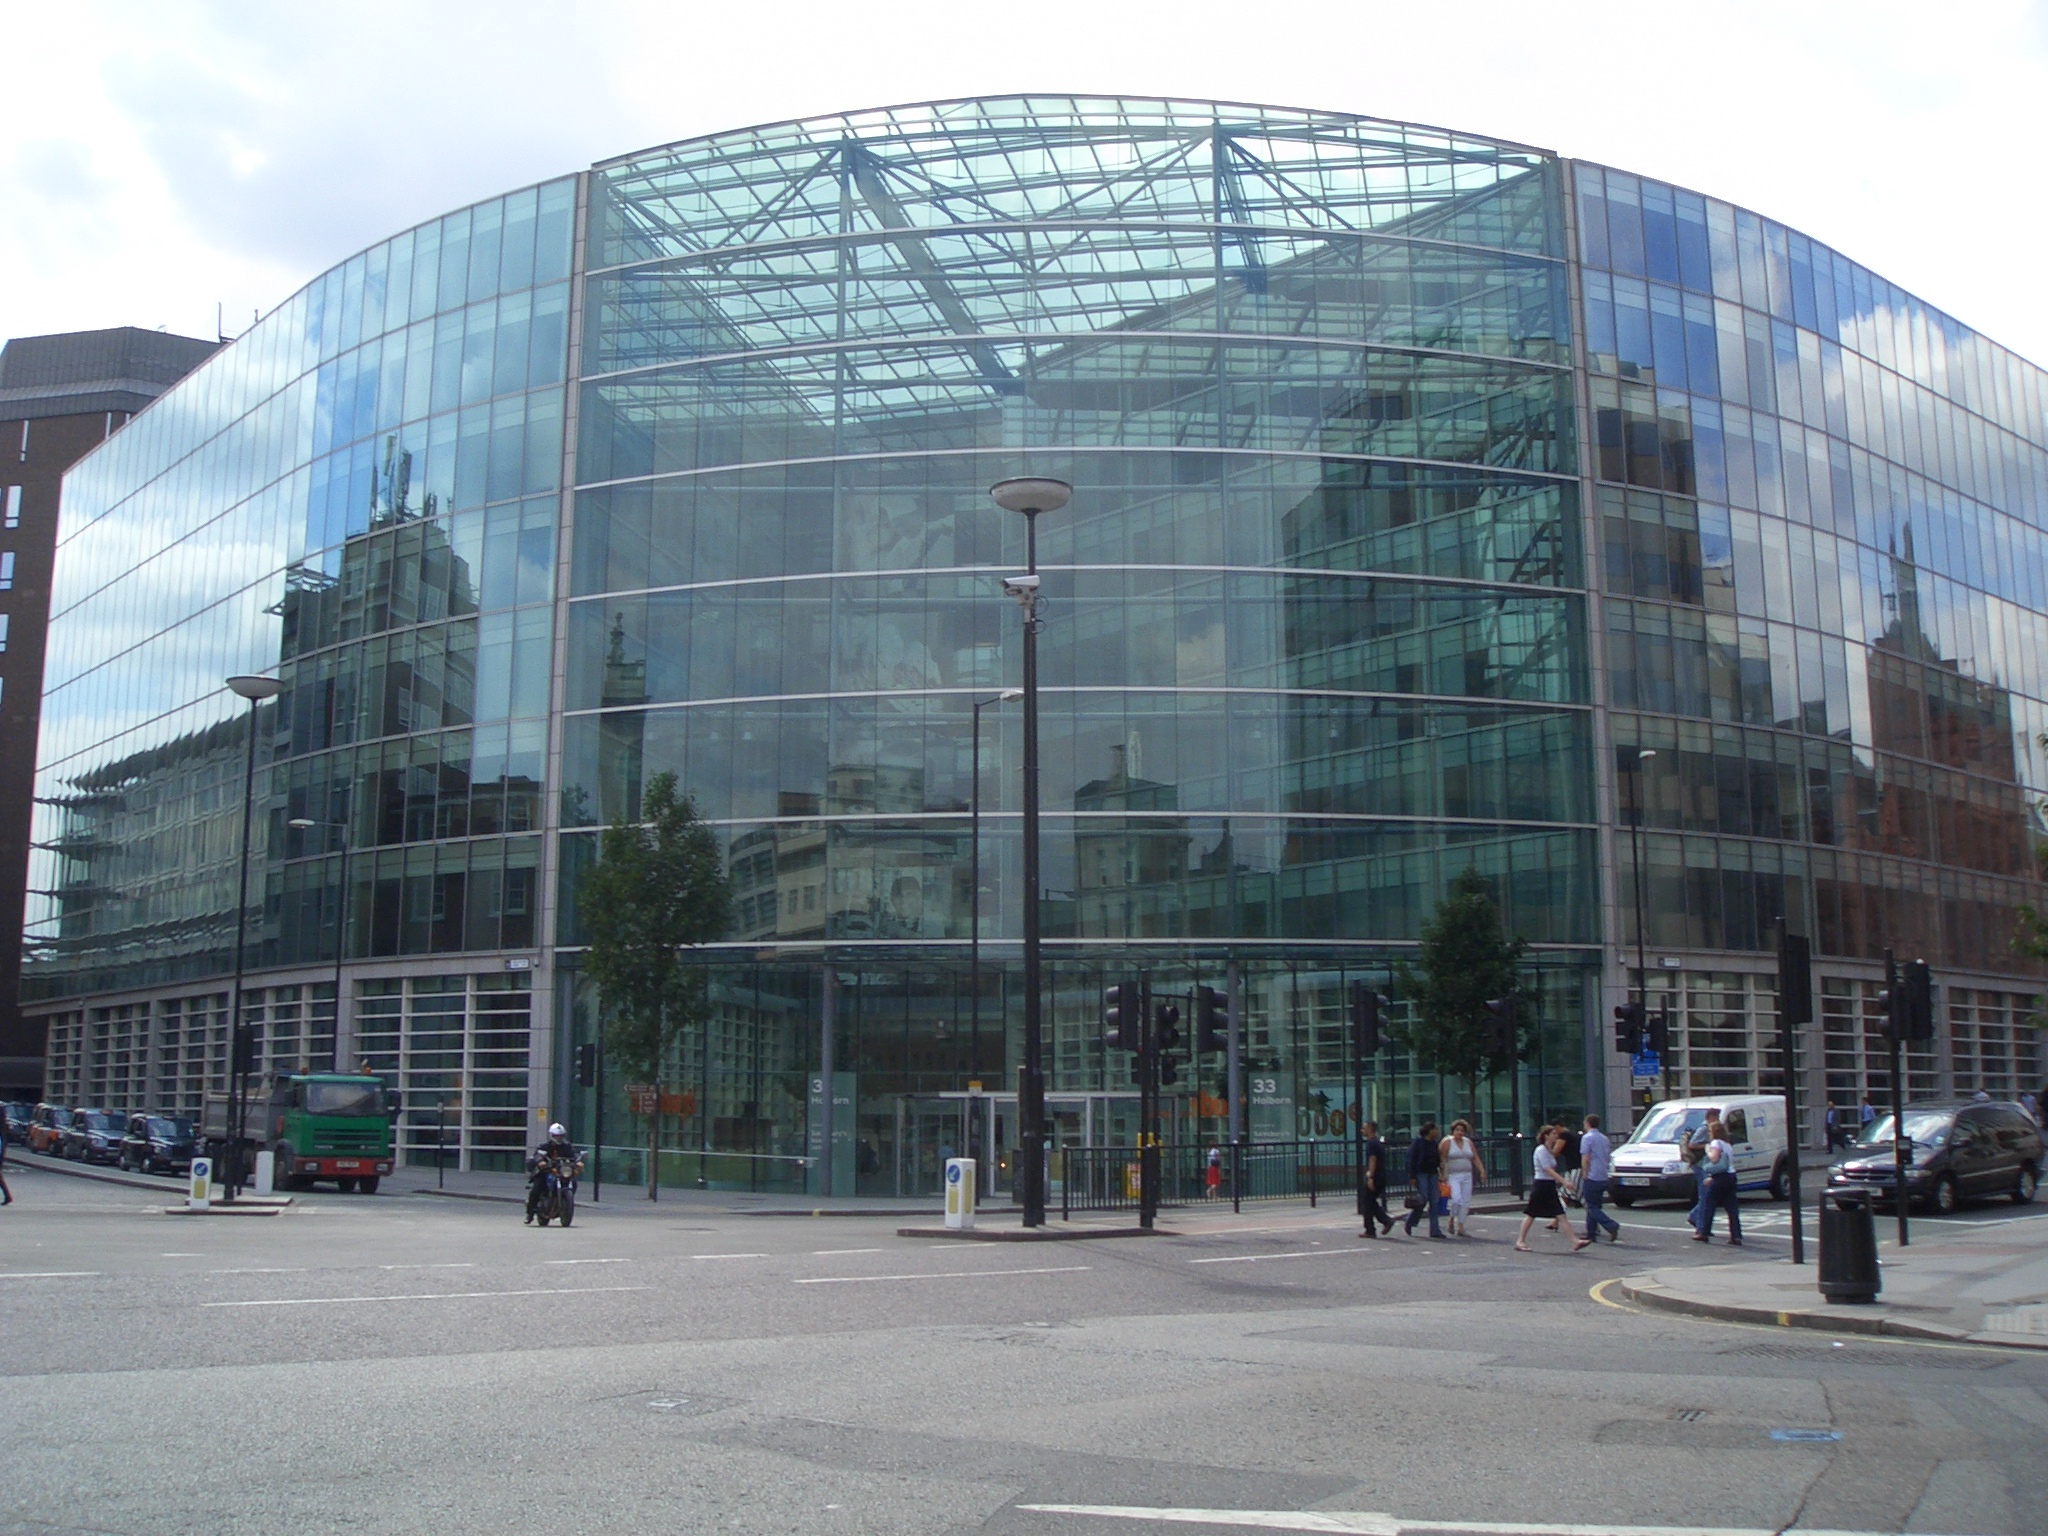 File:J Sainsbury HQ 1.jpg - Wikipedia, the free encyclopedia